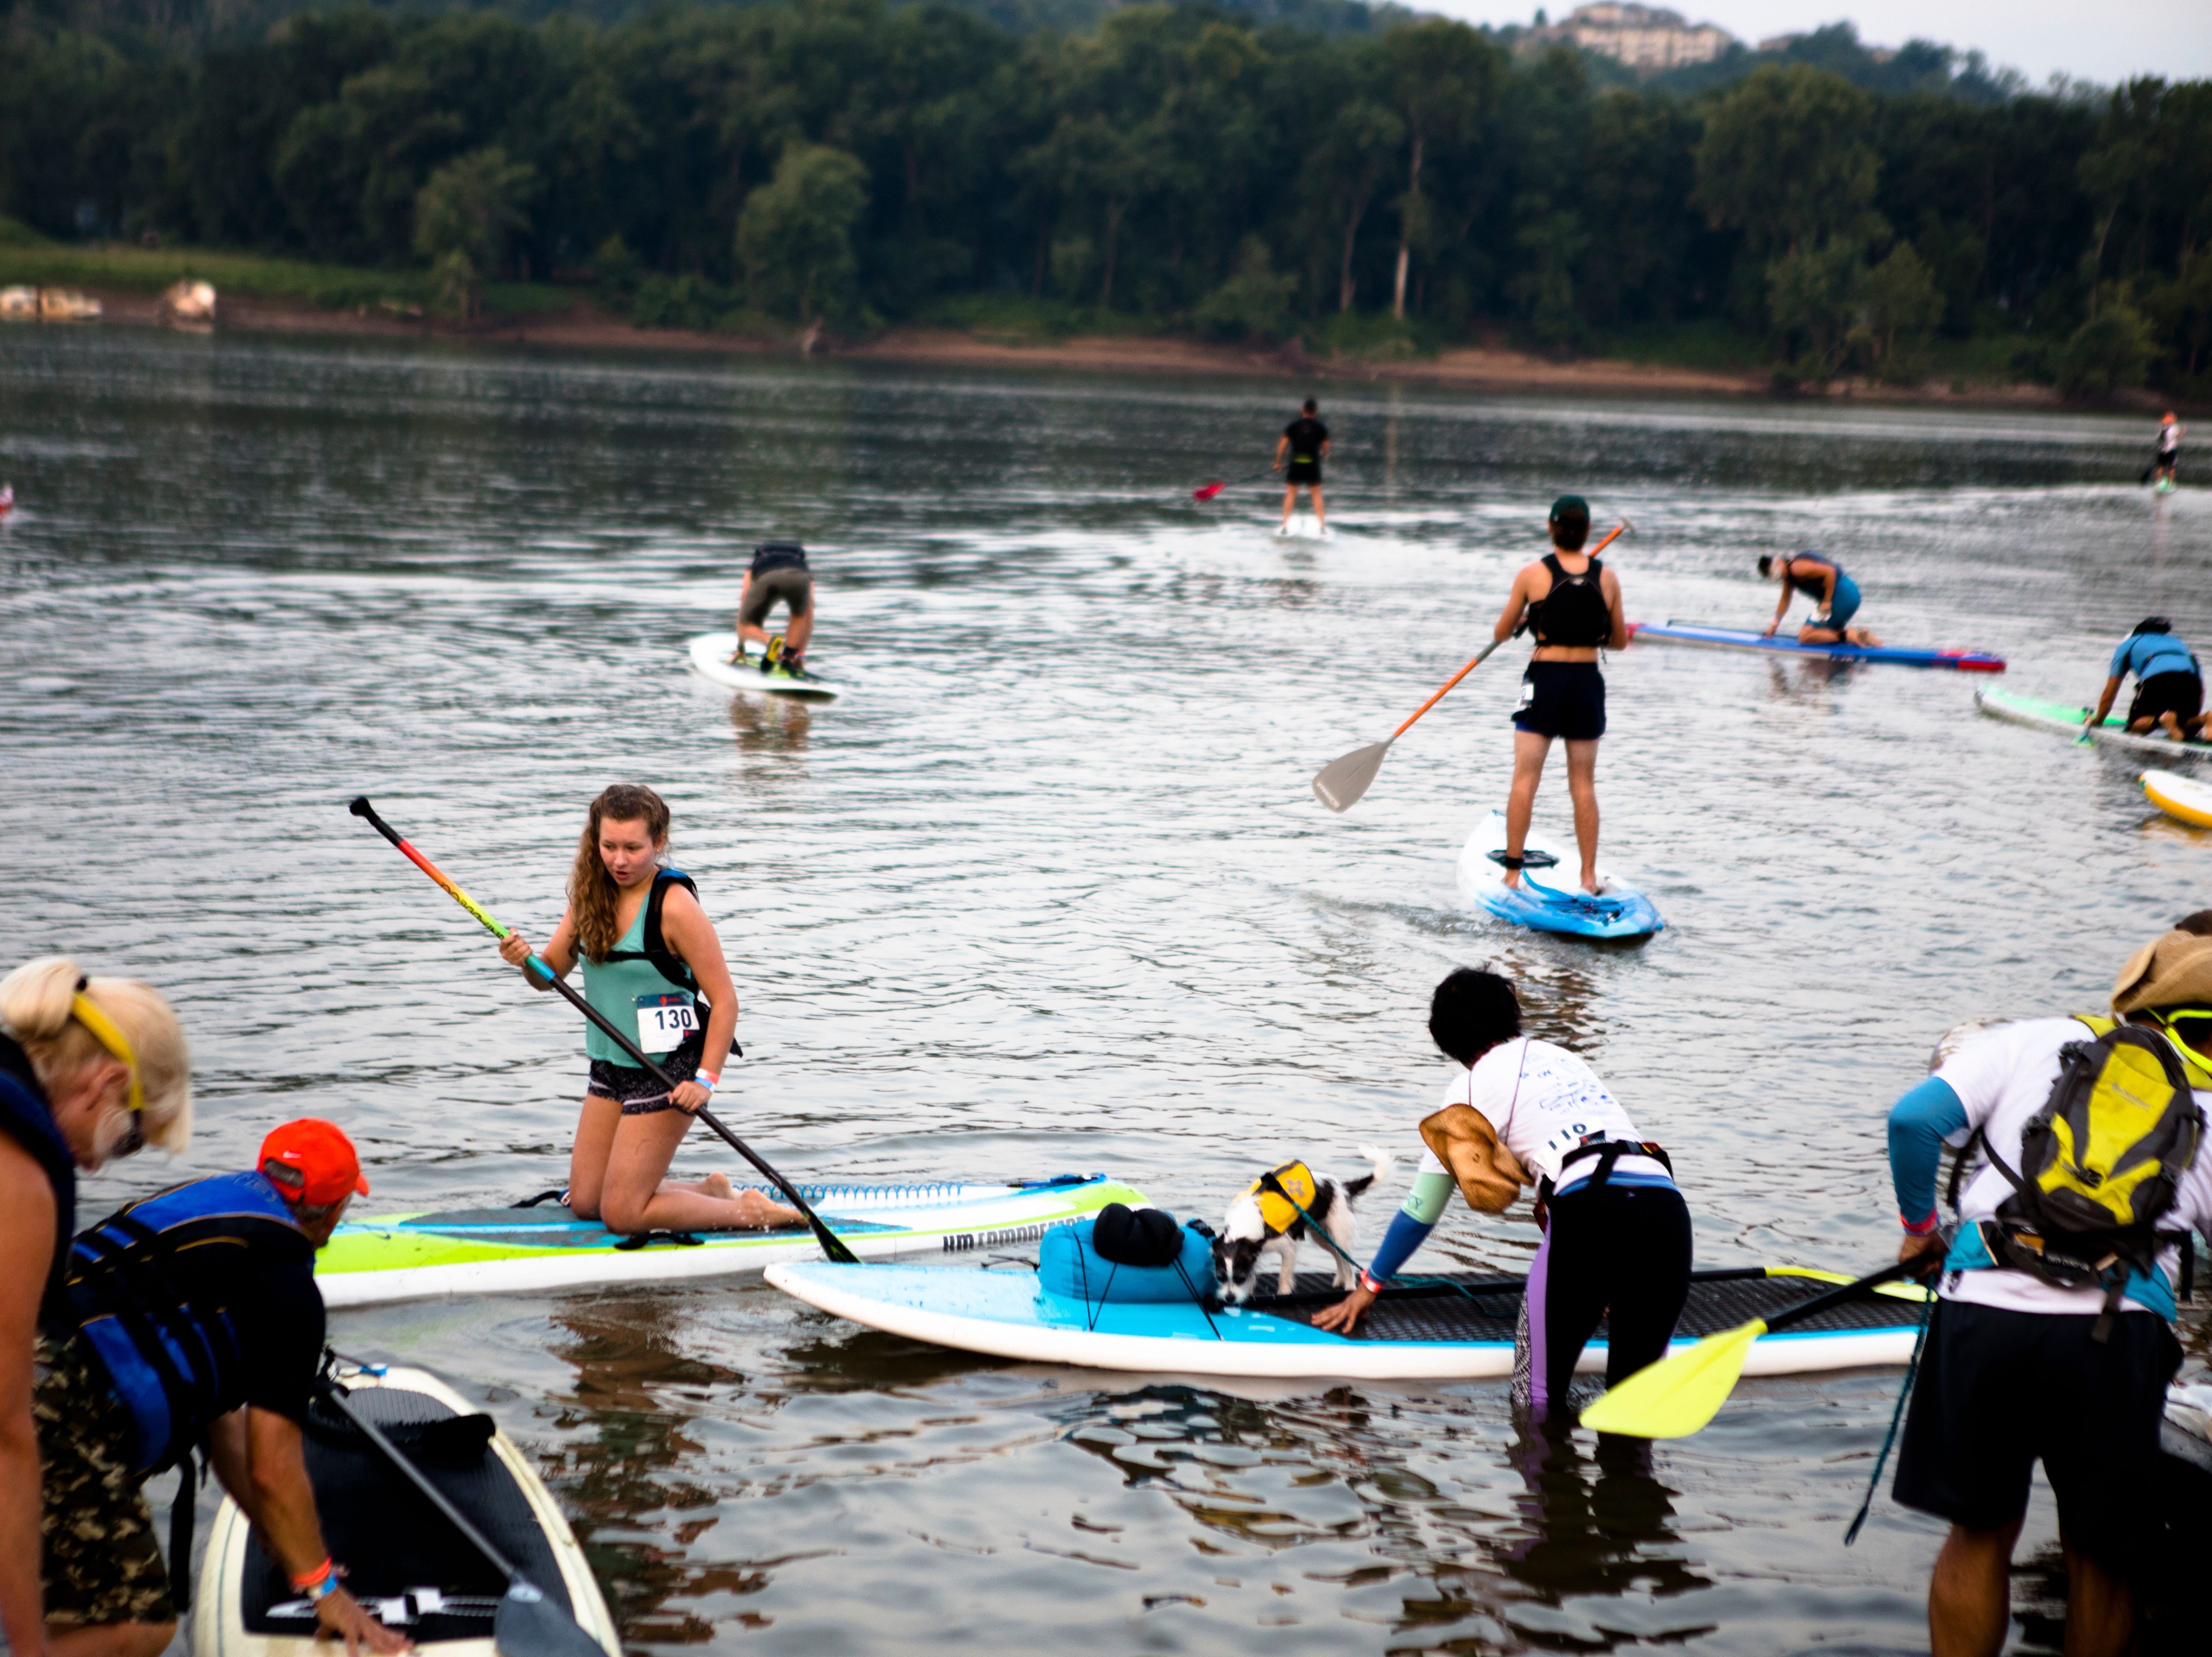 People paddle down the Ohio River on Canoes, Kayaks and Paddle Boards during the 17th annual Ohio River Paddlefest in Cincinnati on Saturday, Aug. 4, 2018.  According to organizers about 2000 people participated in the event which Outdoor Adventure Clubs of Greater Cincinnati raised almost $100,000.